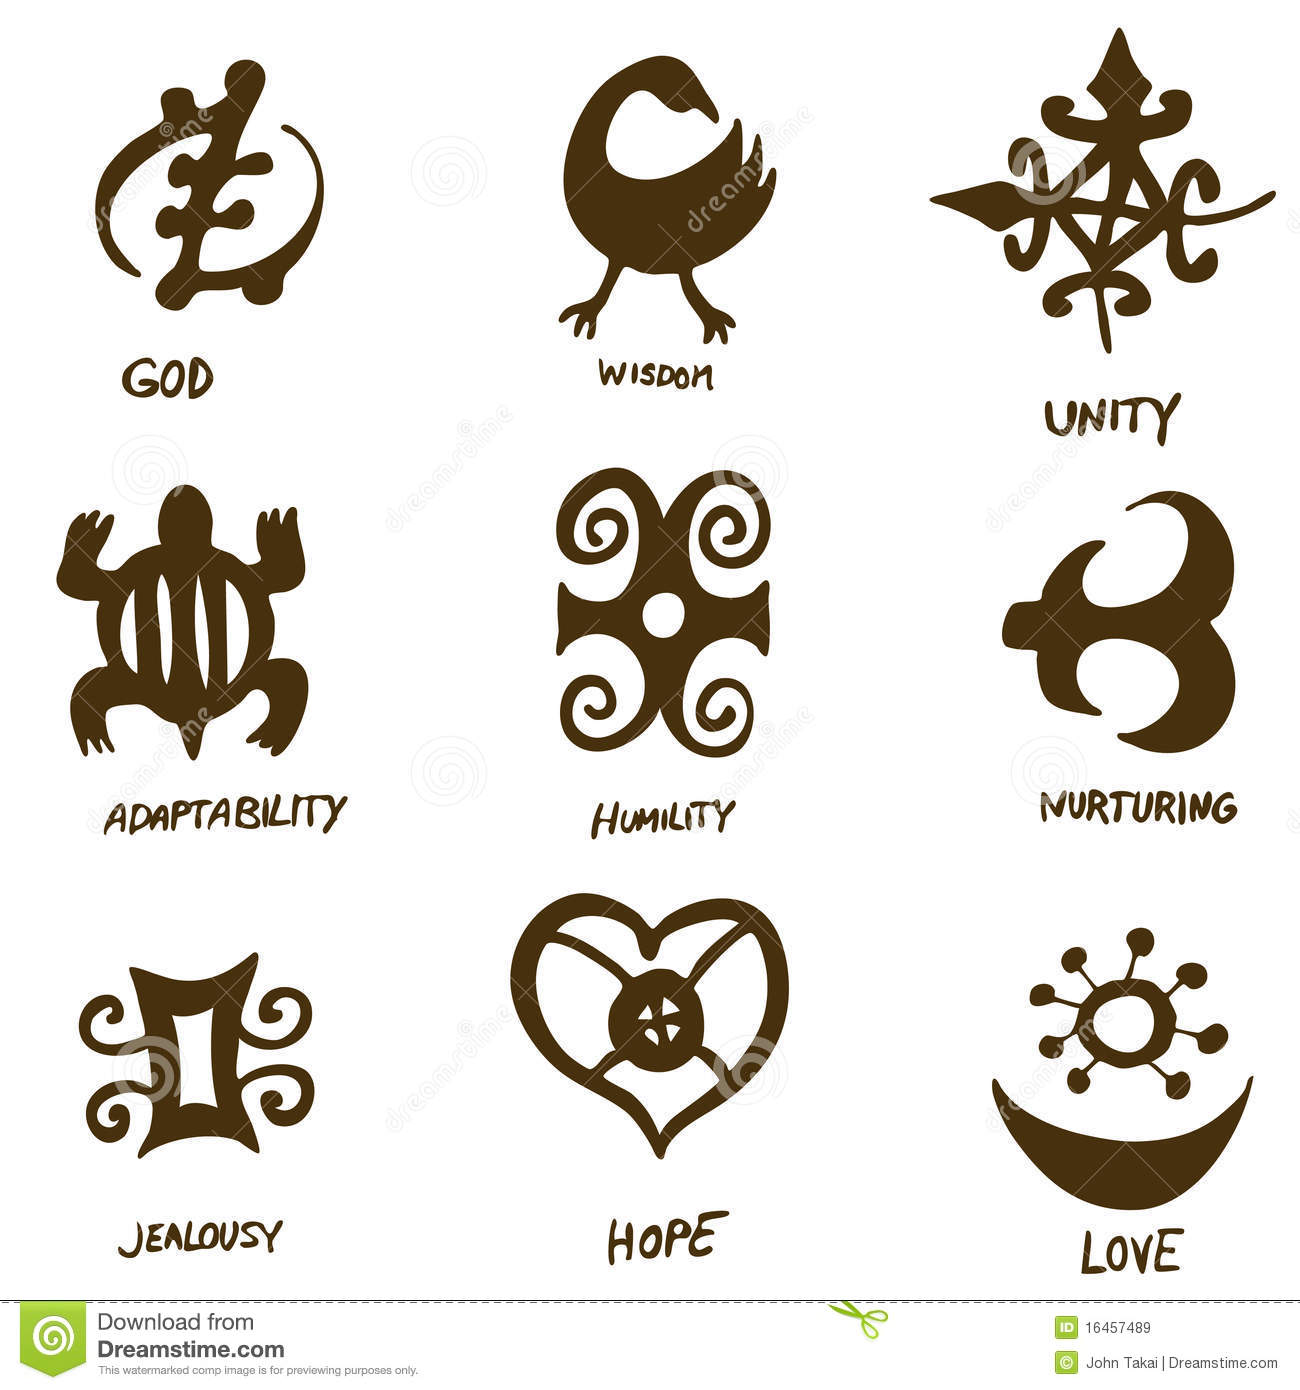 God african symbols set red color stock image image 20176691 adinkra symbols royalty free stock images biocorpaavc